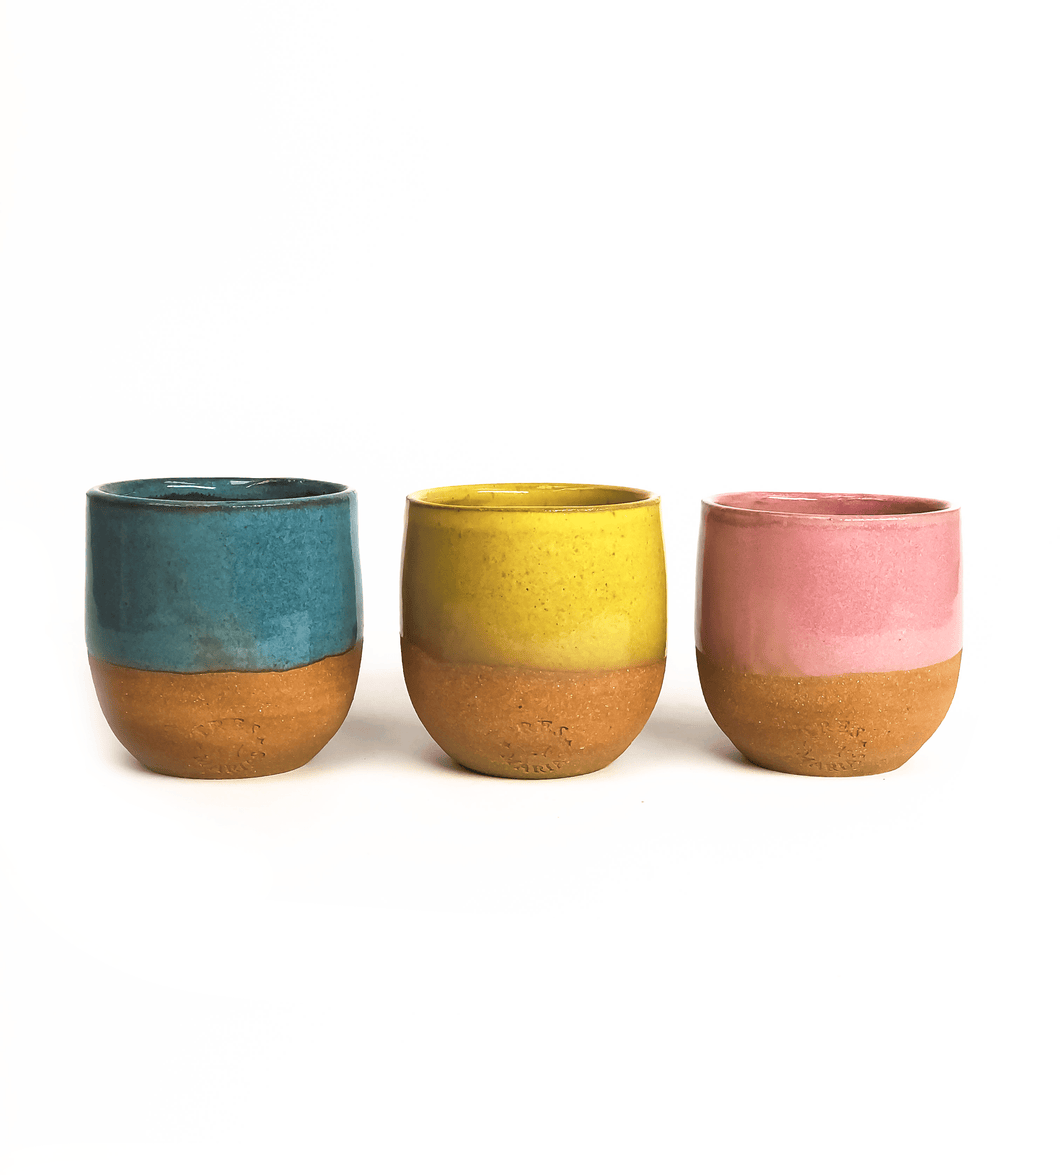 Tres Marias Hand Made Ceramic Cups - Espresso, Piccolo and Black Coffee - Tres Marias Coffee Company